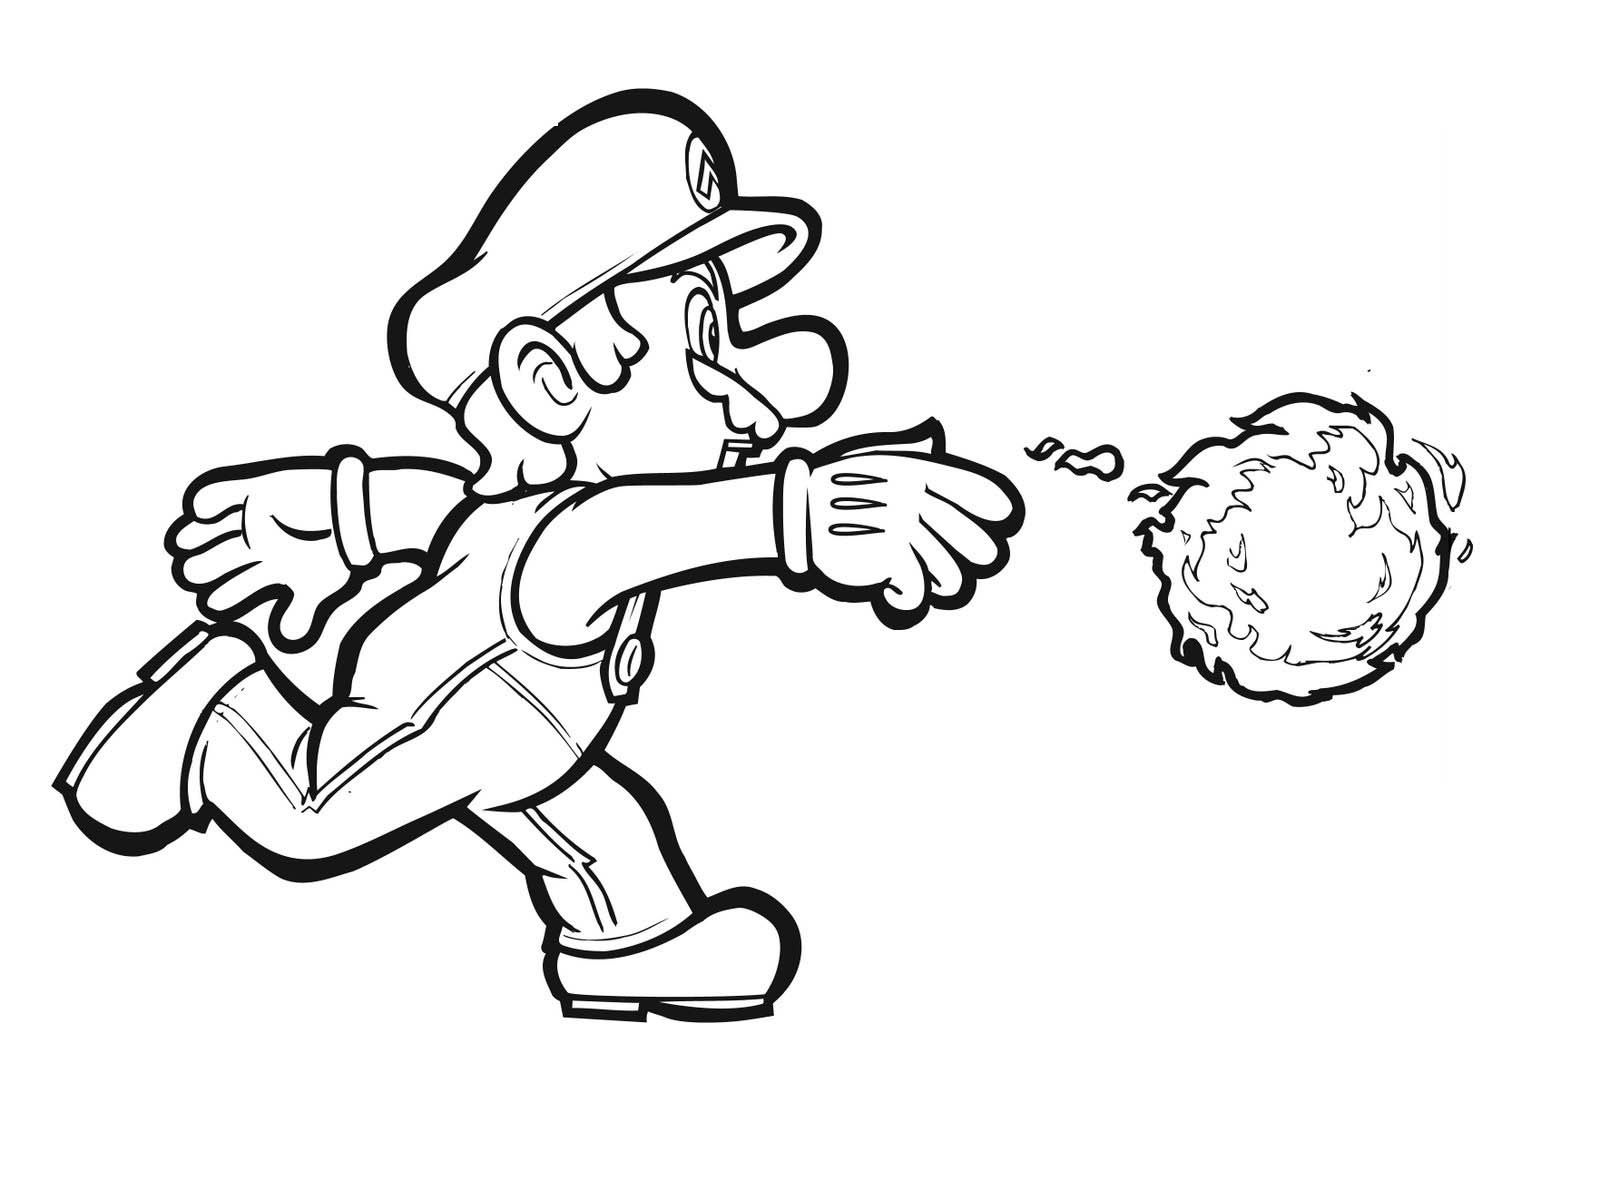 Pikmin 3 coloring pages - Super Mario Coloring Pages